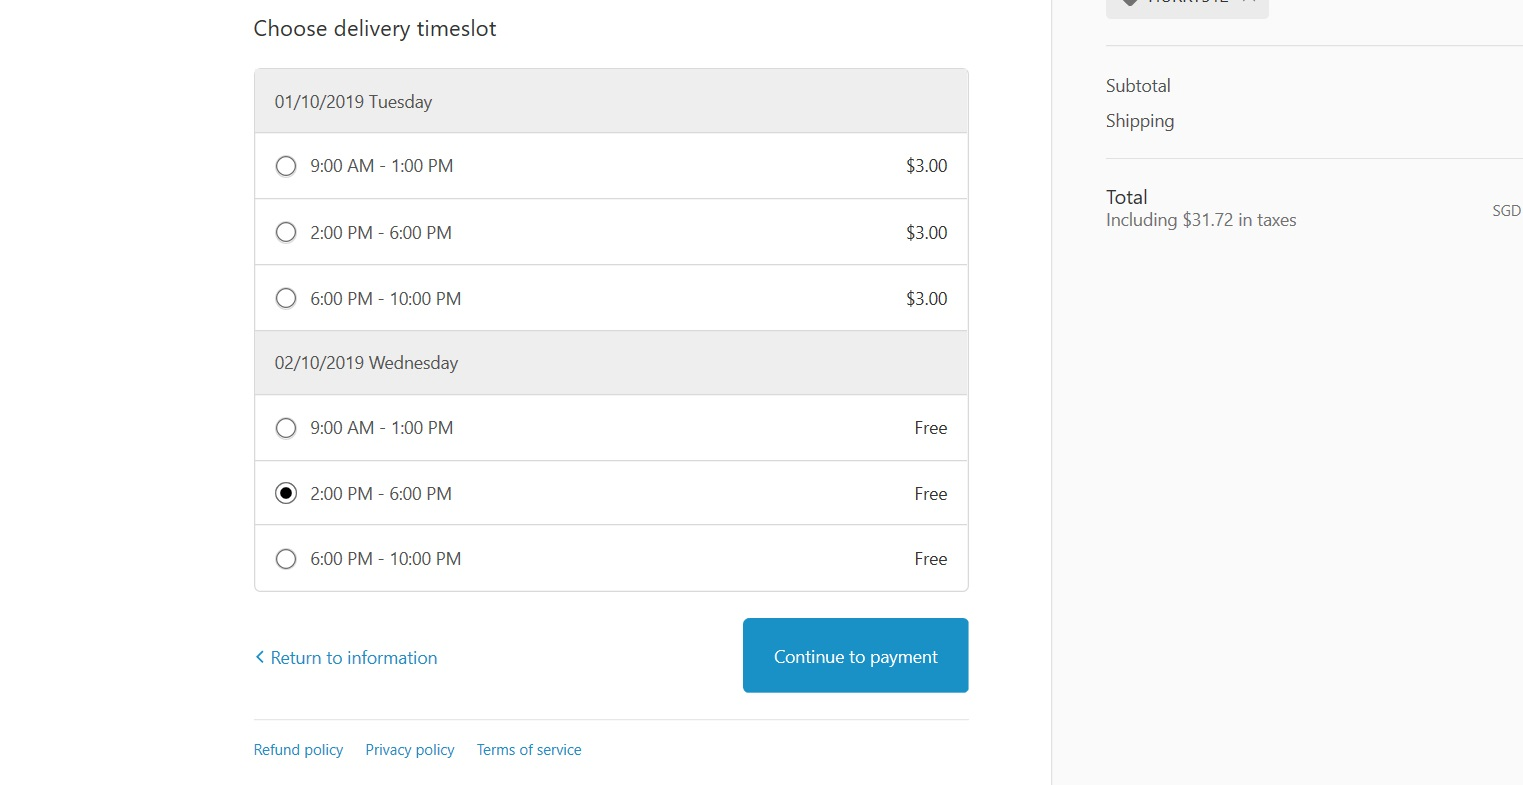 Listing of options to choose a delivery time slot.